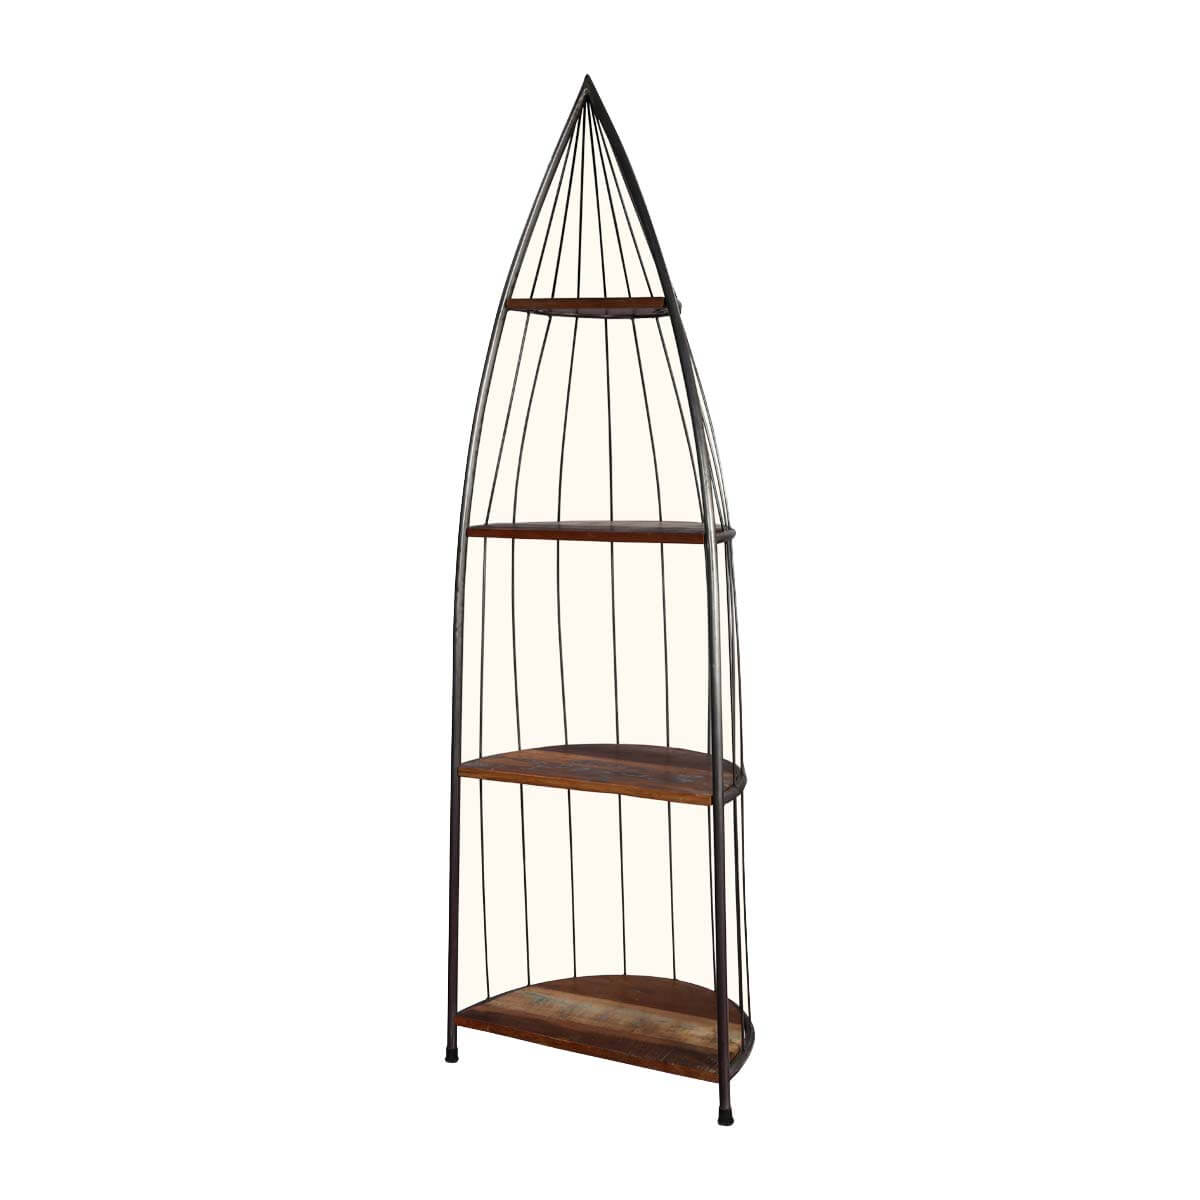 New York Chic 4 Shelf Iron and Wood 73 Tall Accent Display Rack